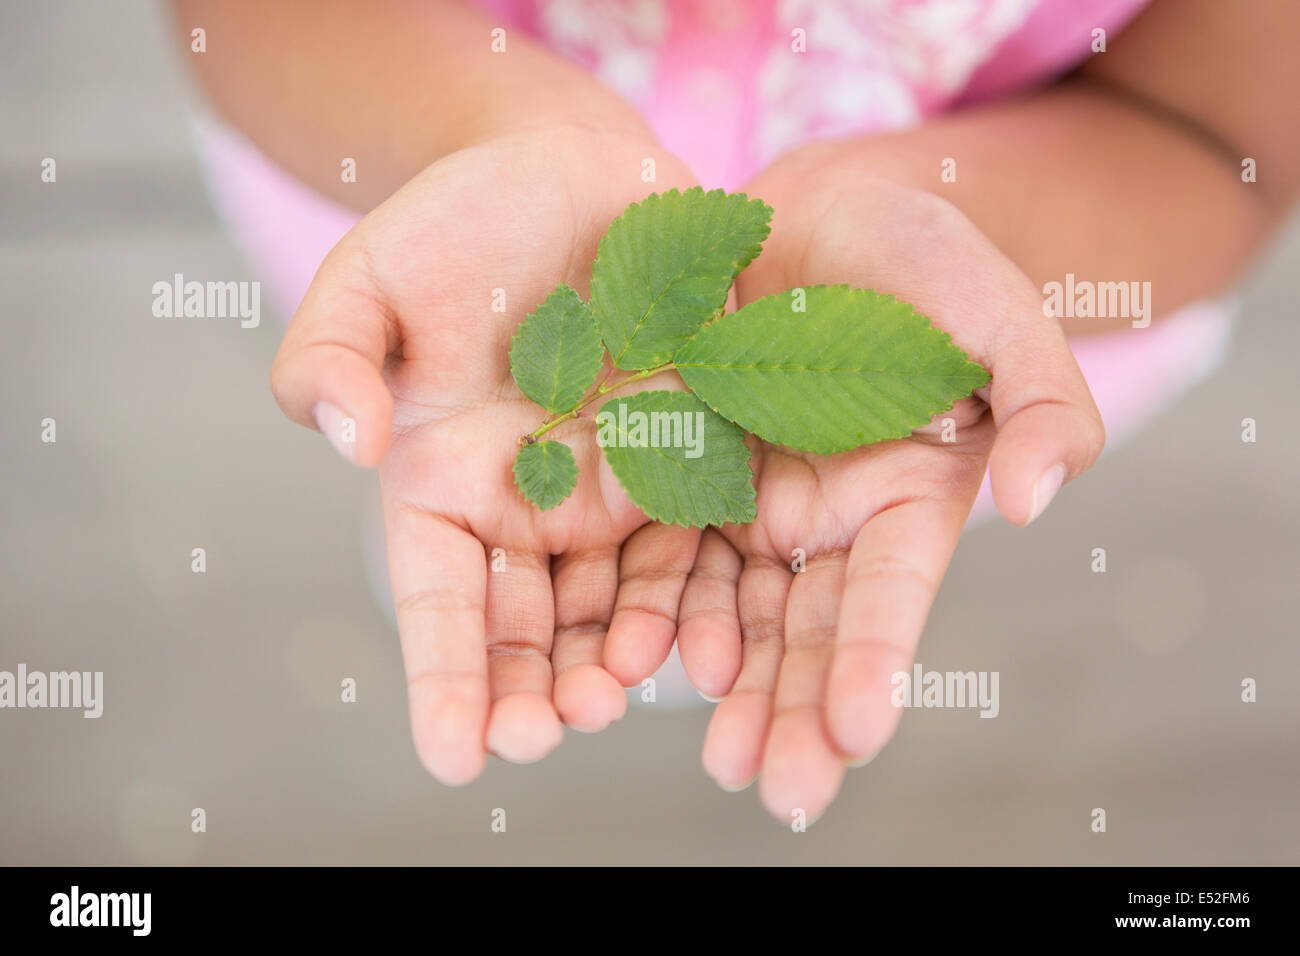 A child holding green leaves in the palms of her hands. - Stock Image